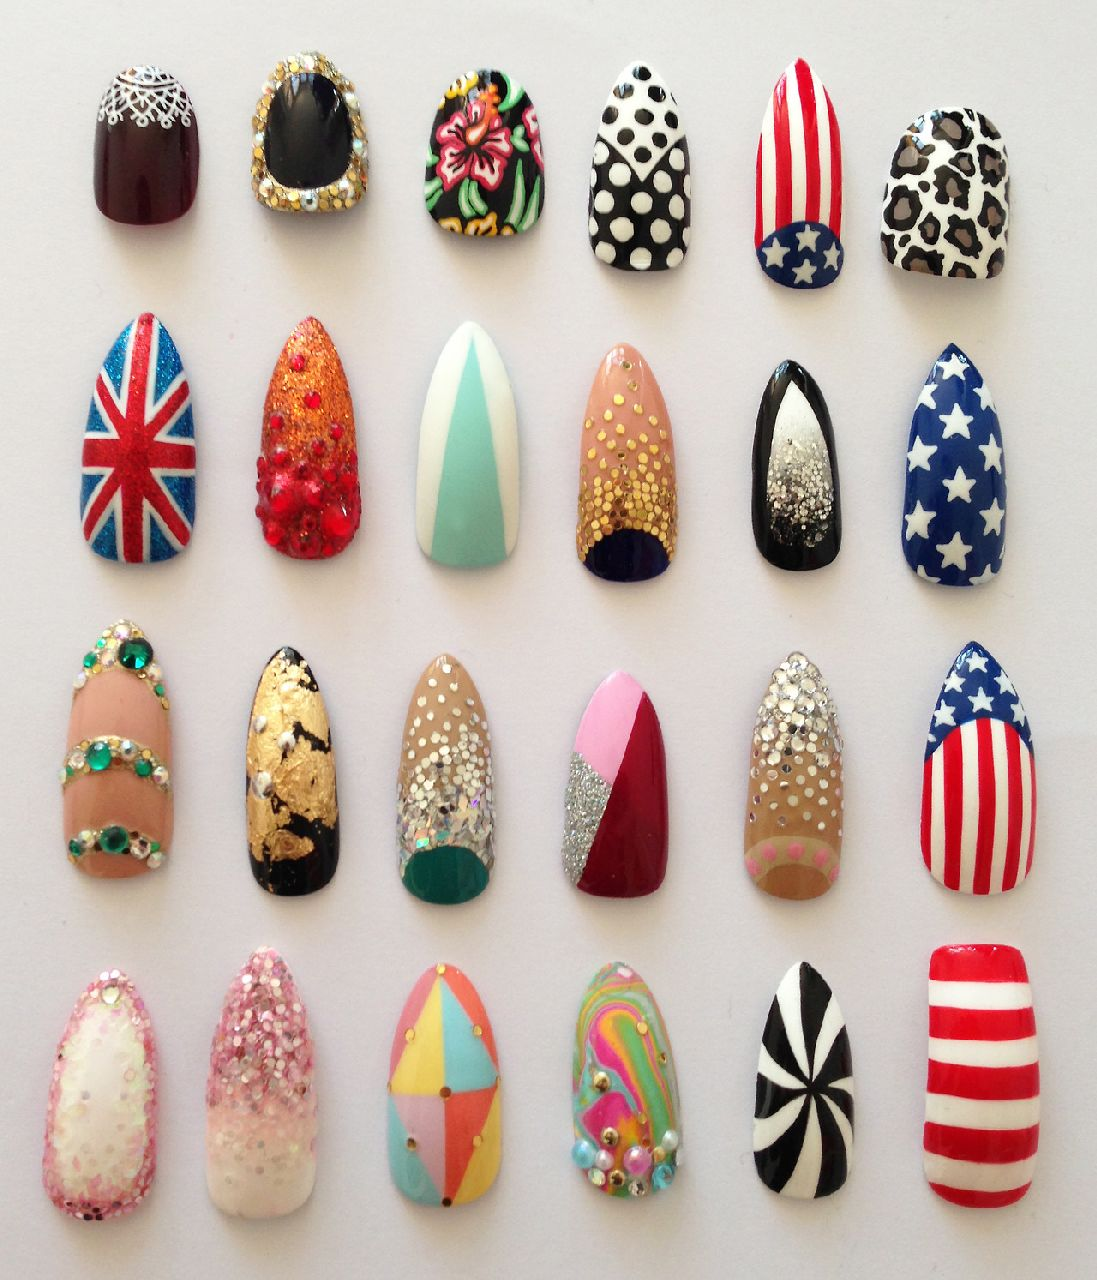 Nail art designs latest concepts 2014 for girls nail art designs latest concepts for women fashion prinsesfo Images